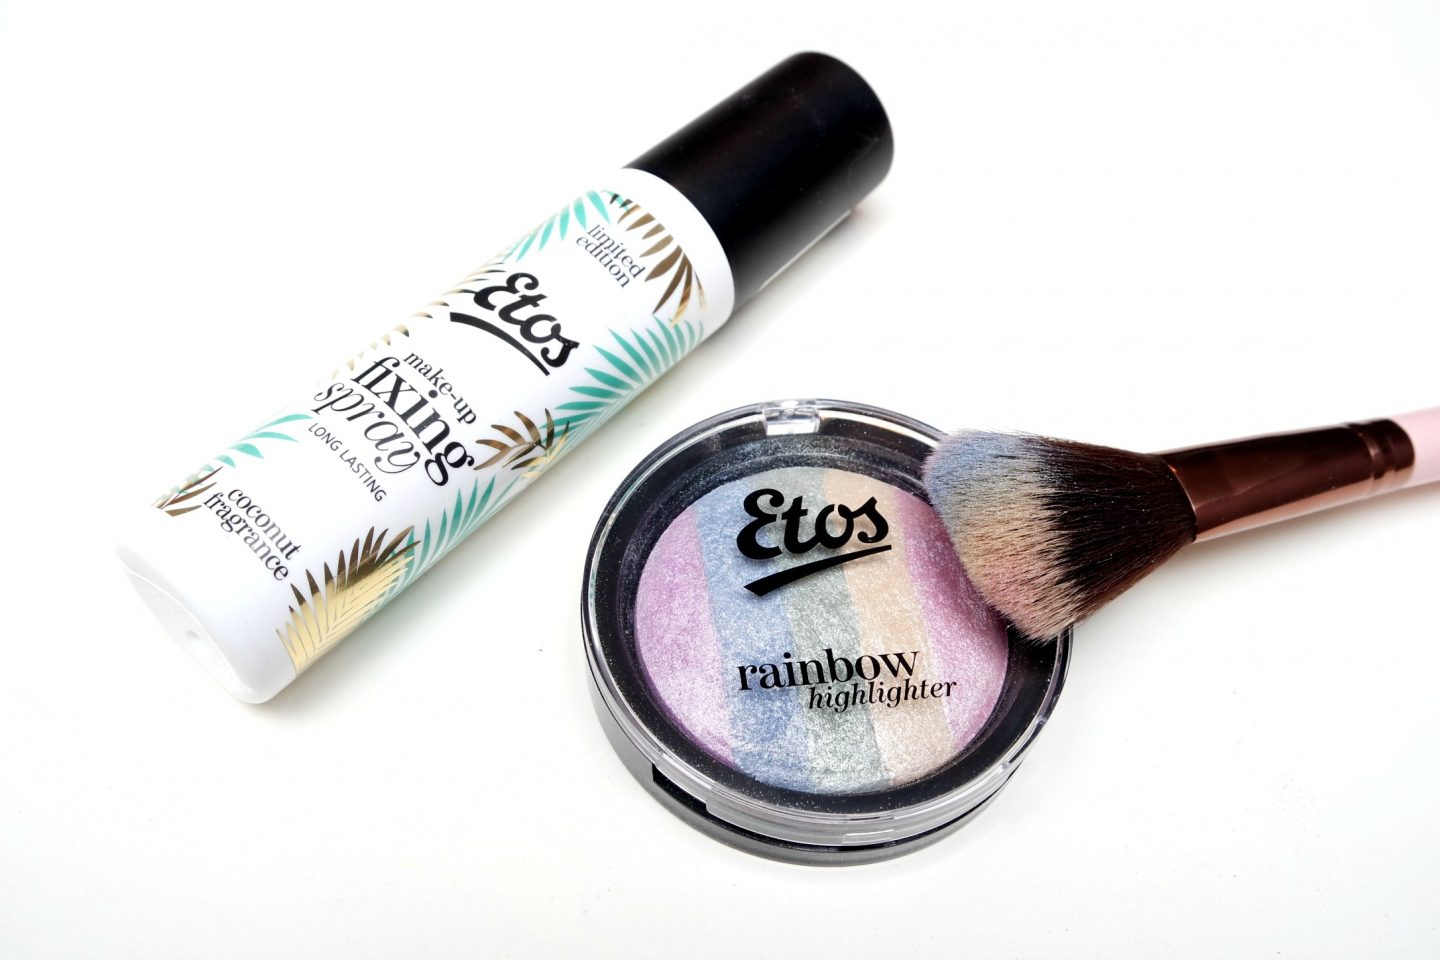 Etos Summer 2017 Make-up – Coconut Make-up Fixing Spray and Rainbow Highlighter